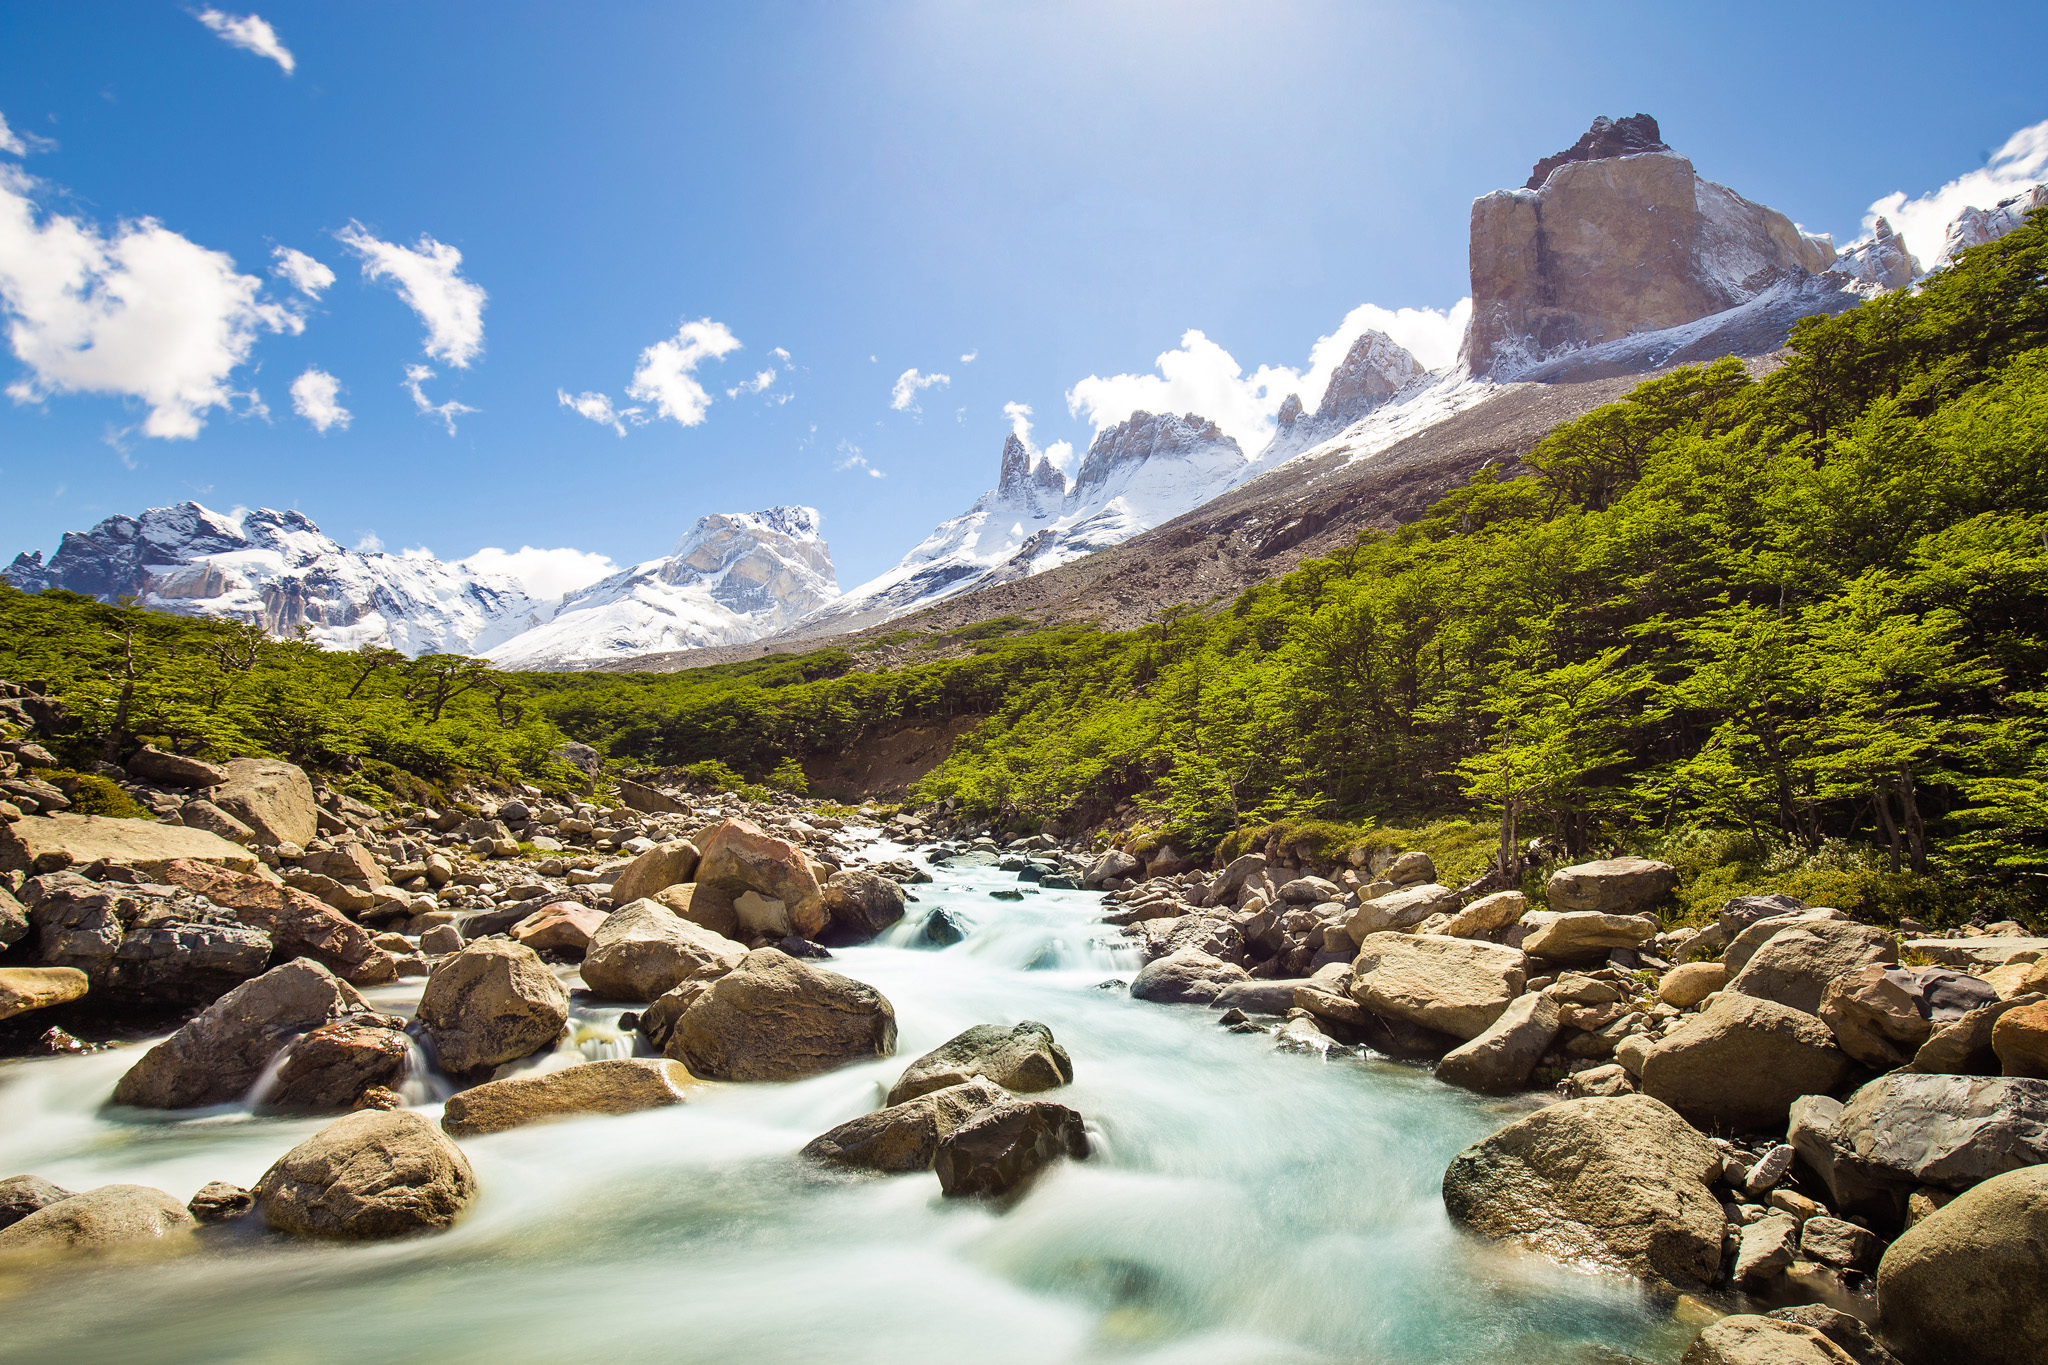 Wedding-Travellers-Overlanding-Destination-Wedding-Chile-Torres-del-Paine-Valle-Frances-Valley-French-river-snow-ice-mountain-glacial-forest-stones